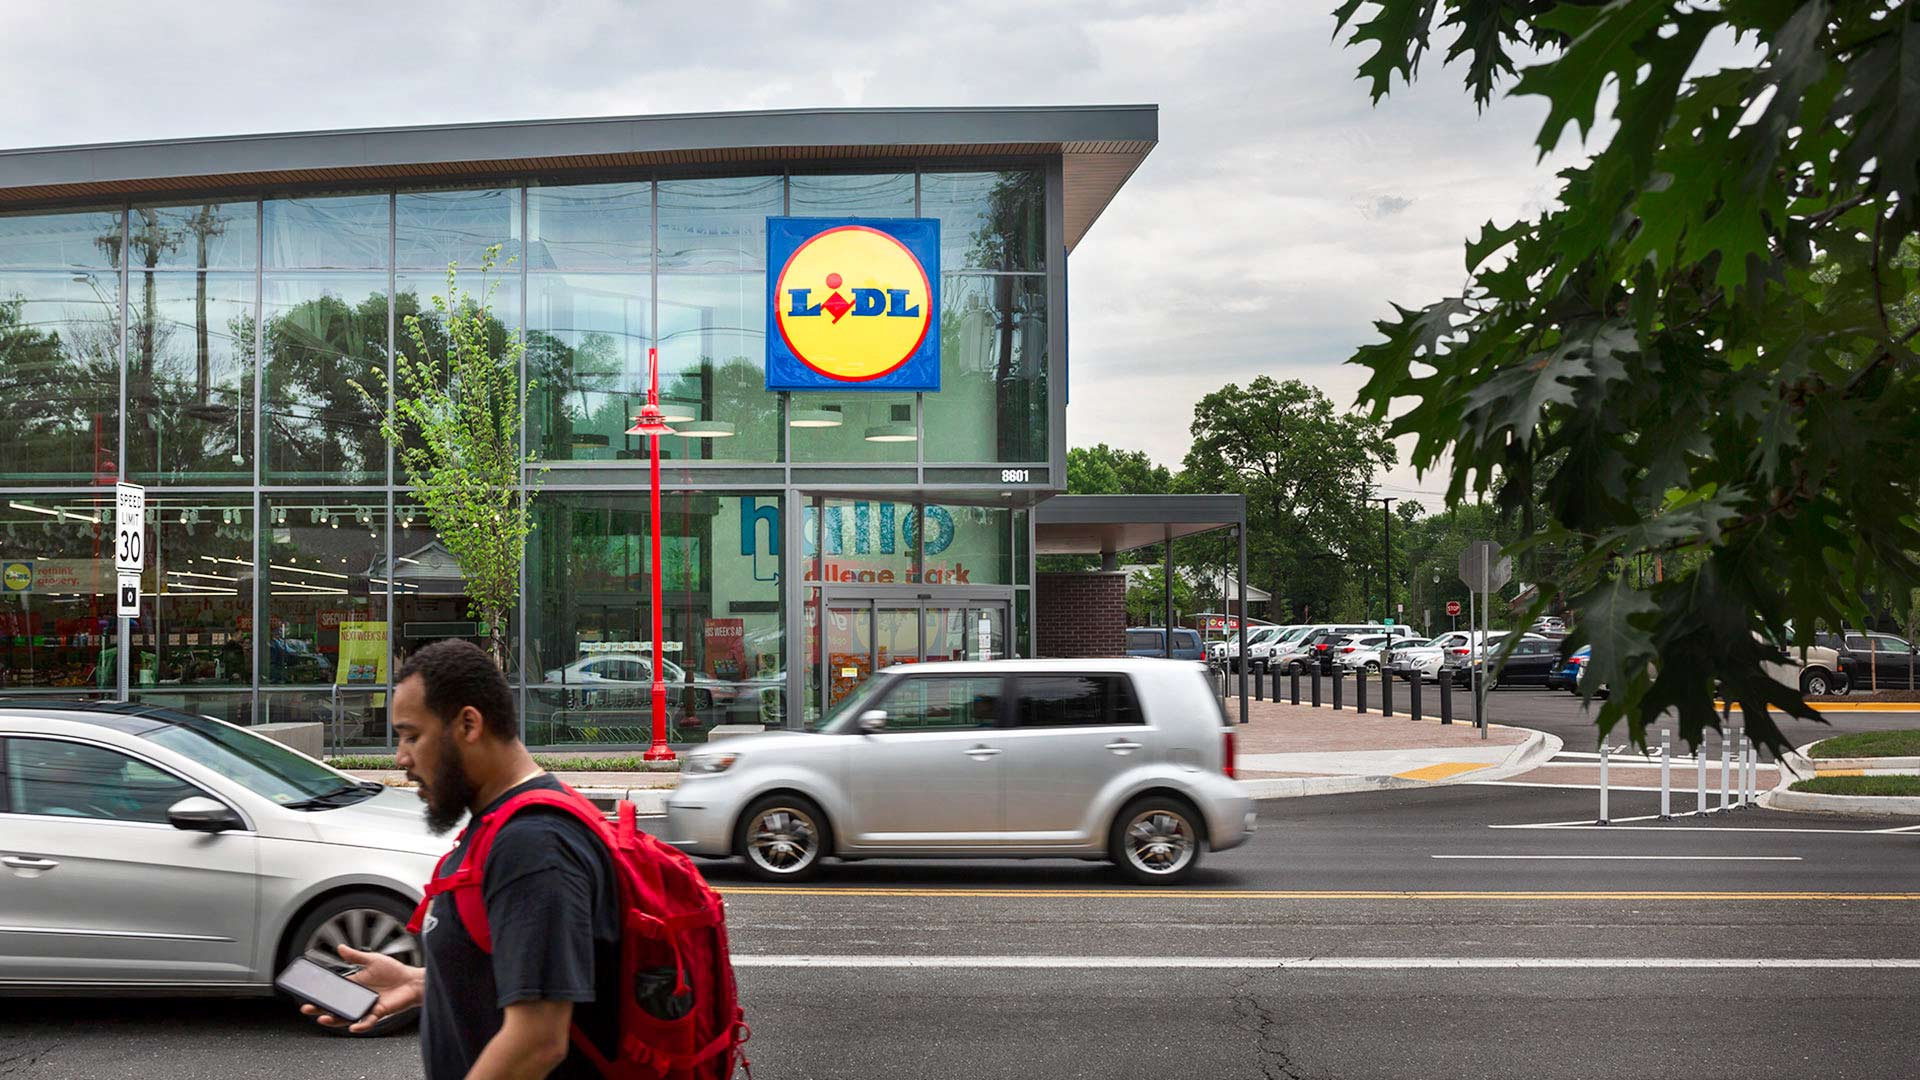 Lidl opens a 36,000-square-foot store in Greater College Park today with a 7:40 a.m. ribbon-cutting. (Photos by Stephanie S. Cordle)